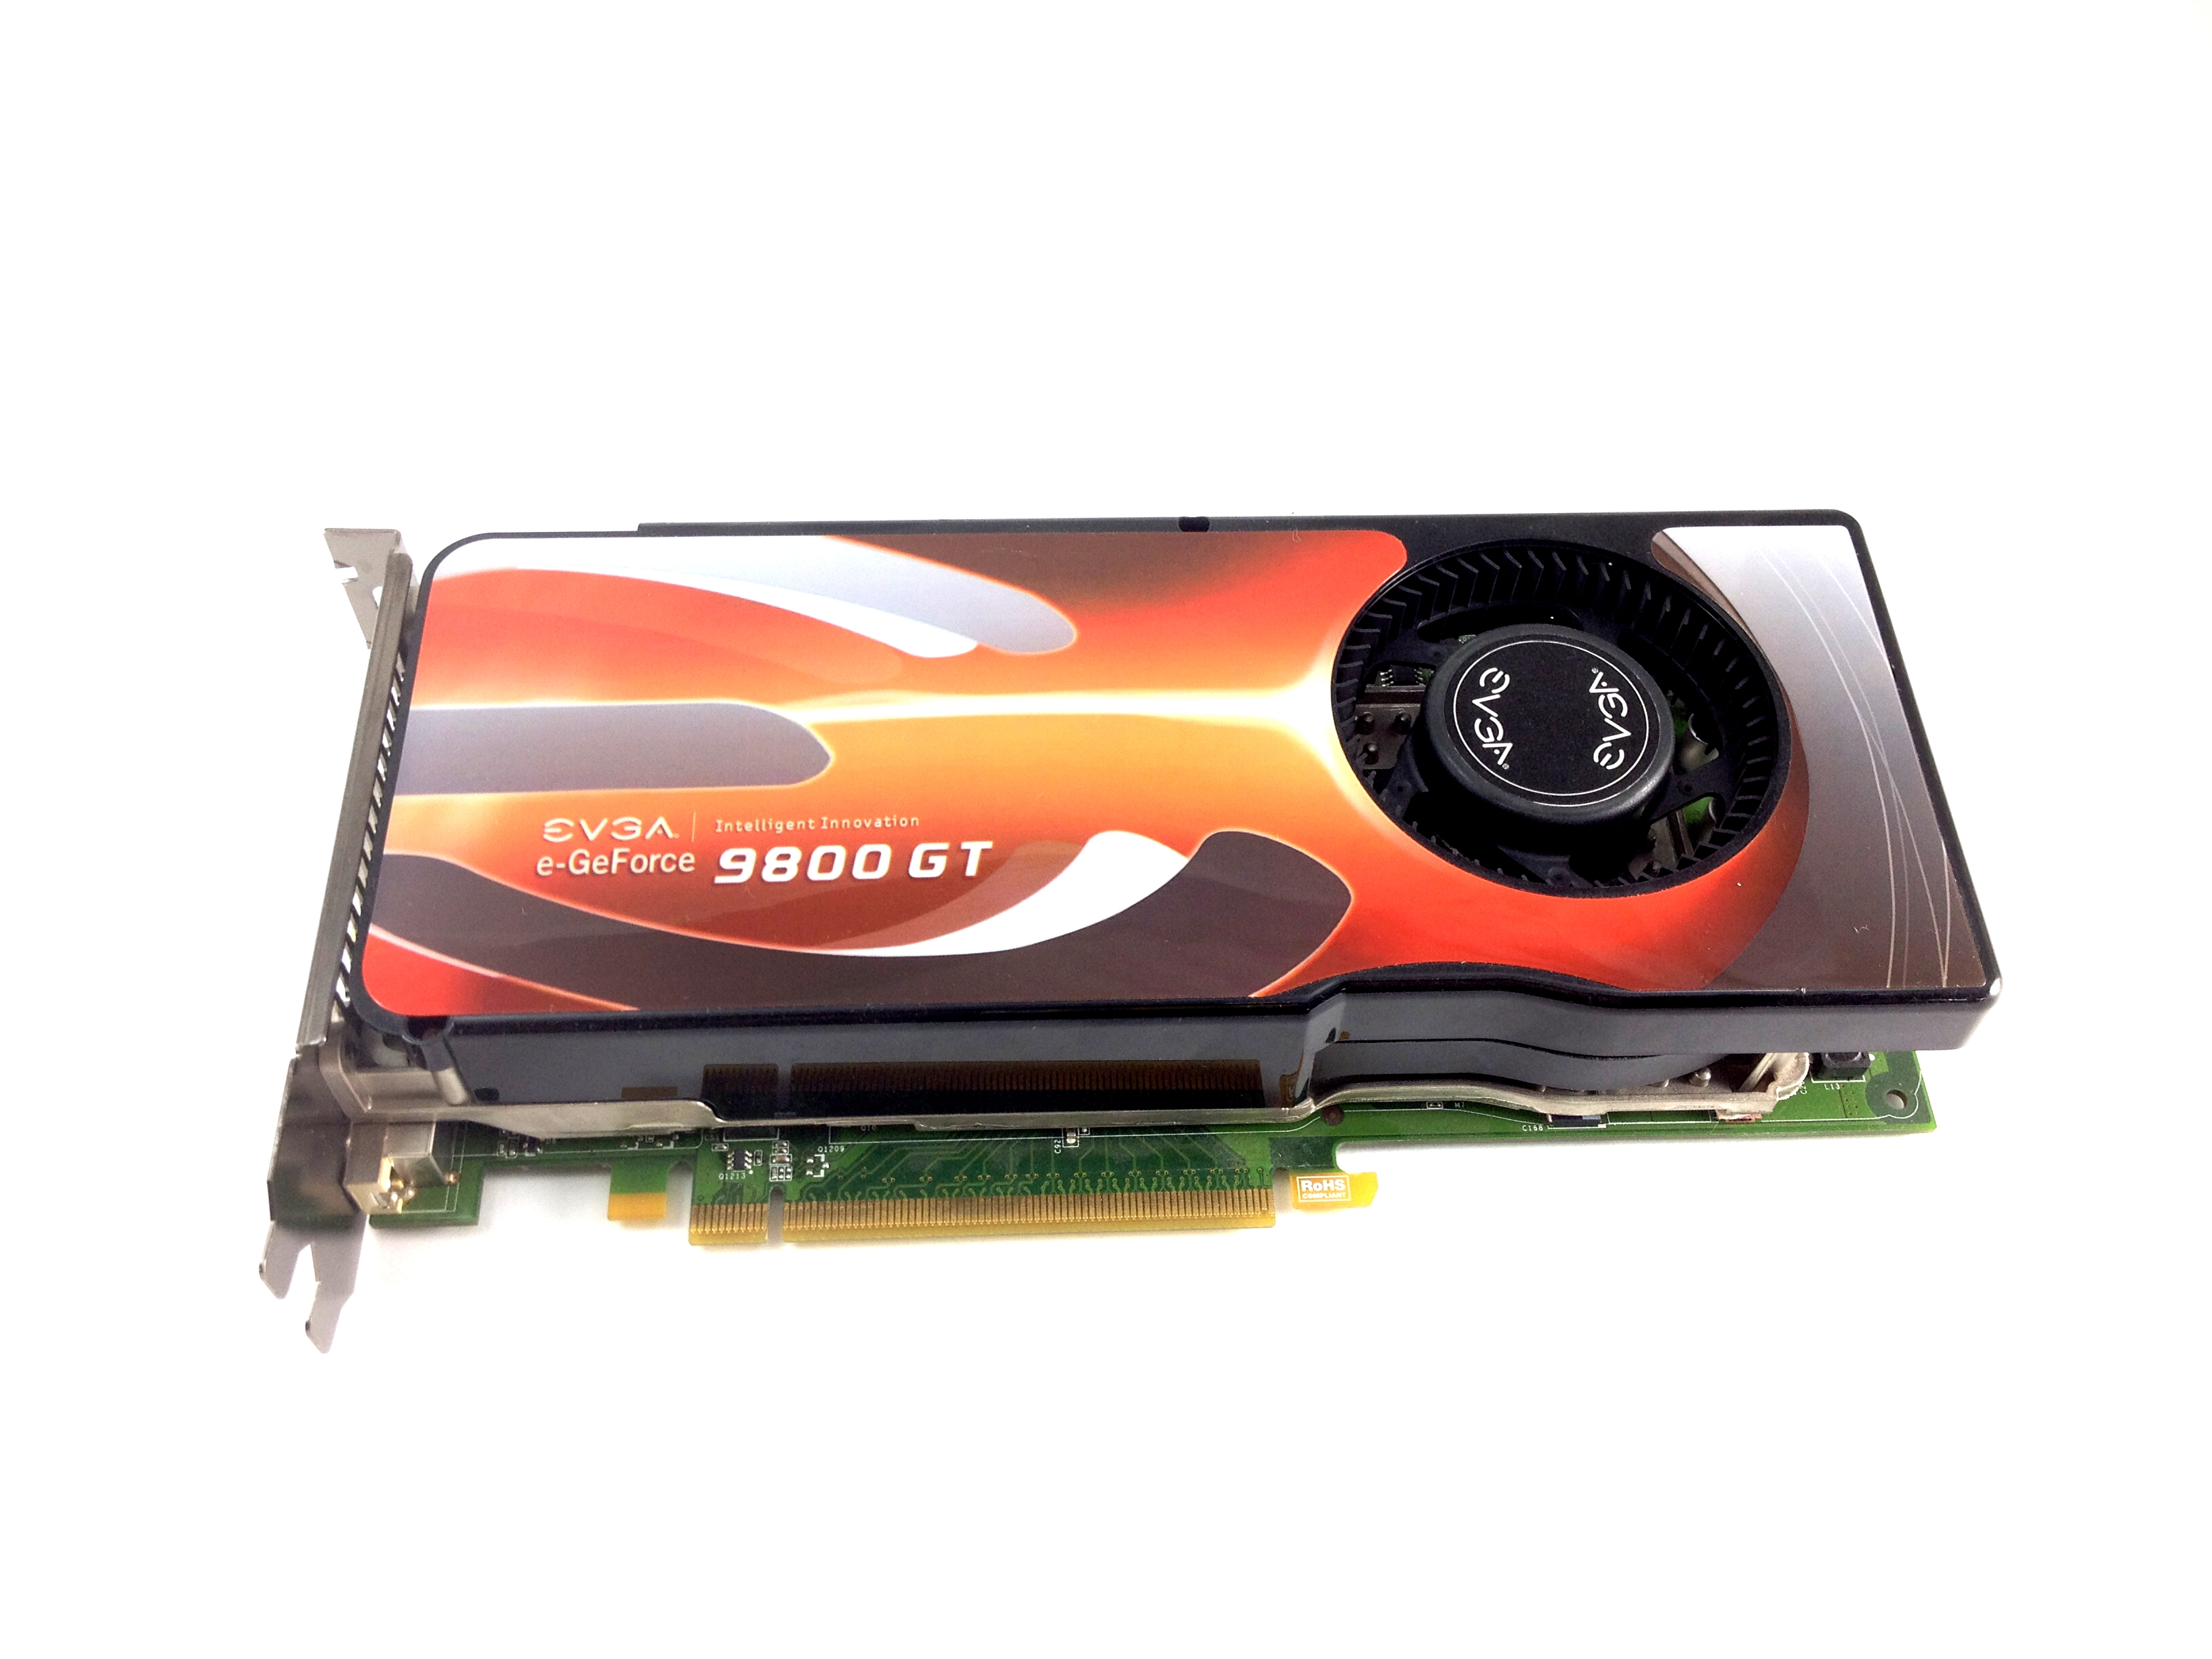 Dell EVGA Nvidia GeForce 9800 Gt 512MB DDR3 PCI-E Video Card (2CPXM)